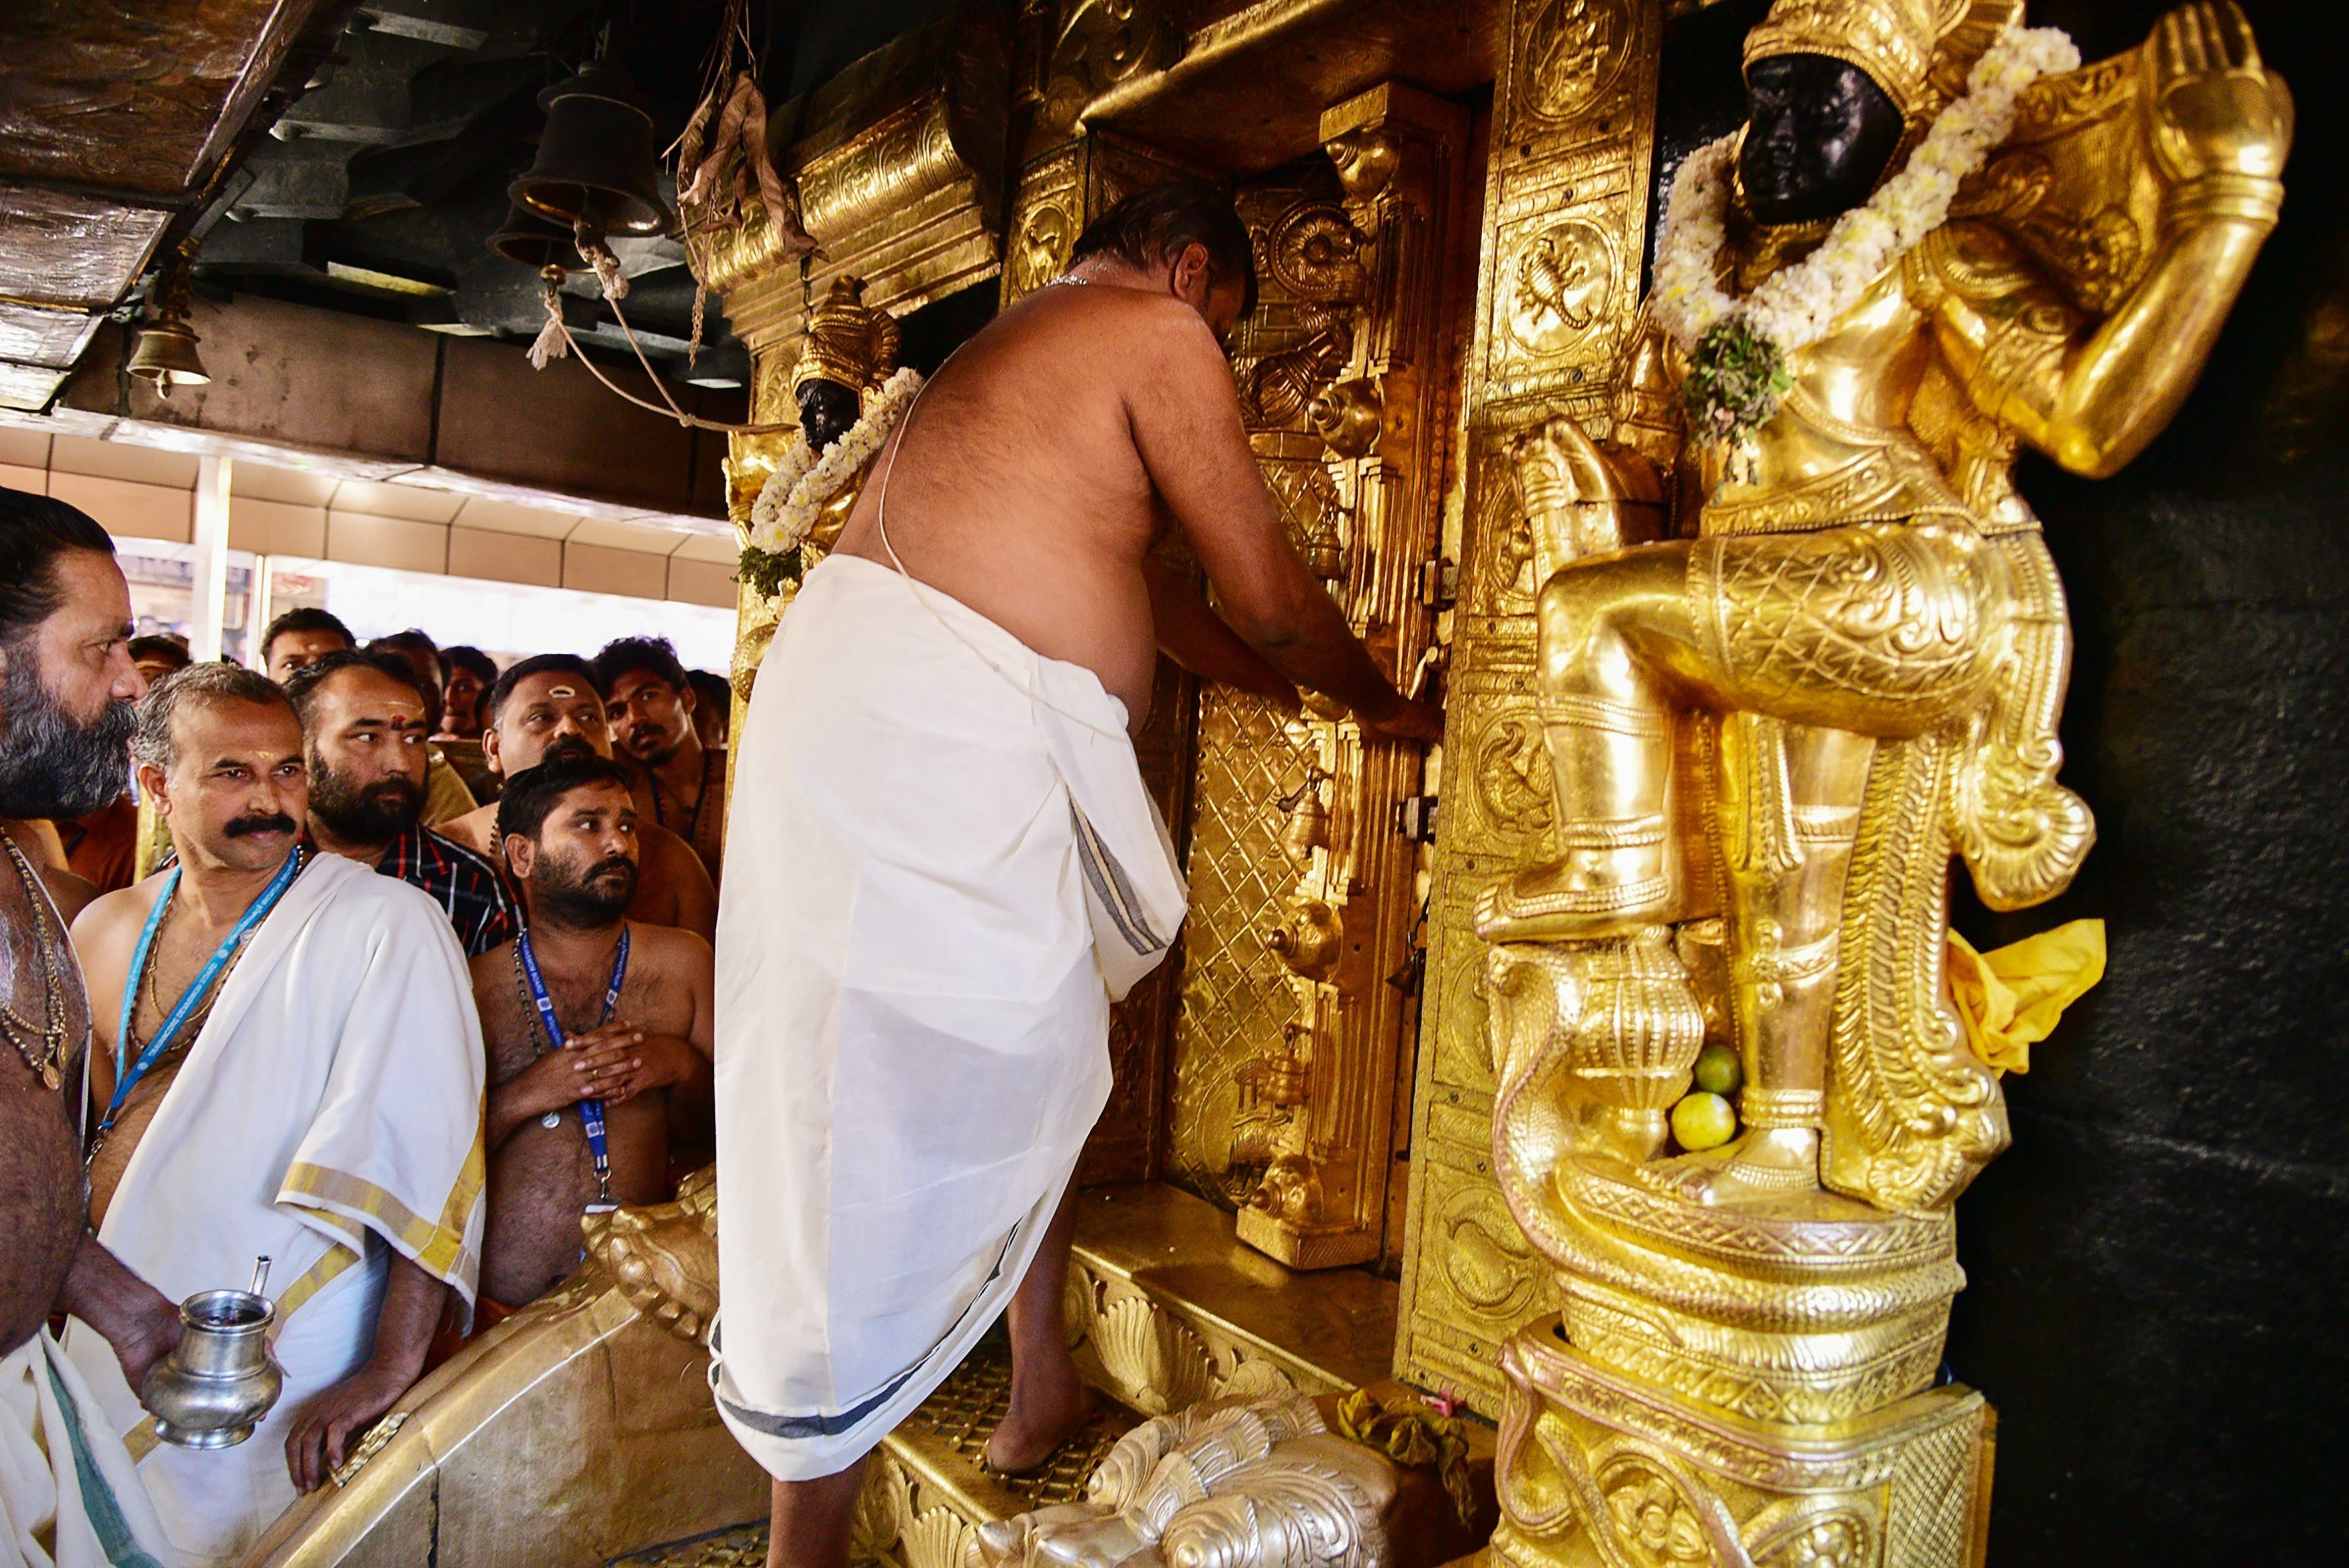 Contempt Of Court? Sabarimala Purification Ritual After Women's Entry Kicks Up